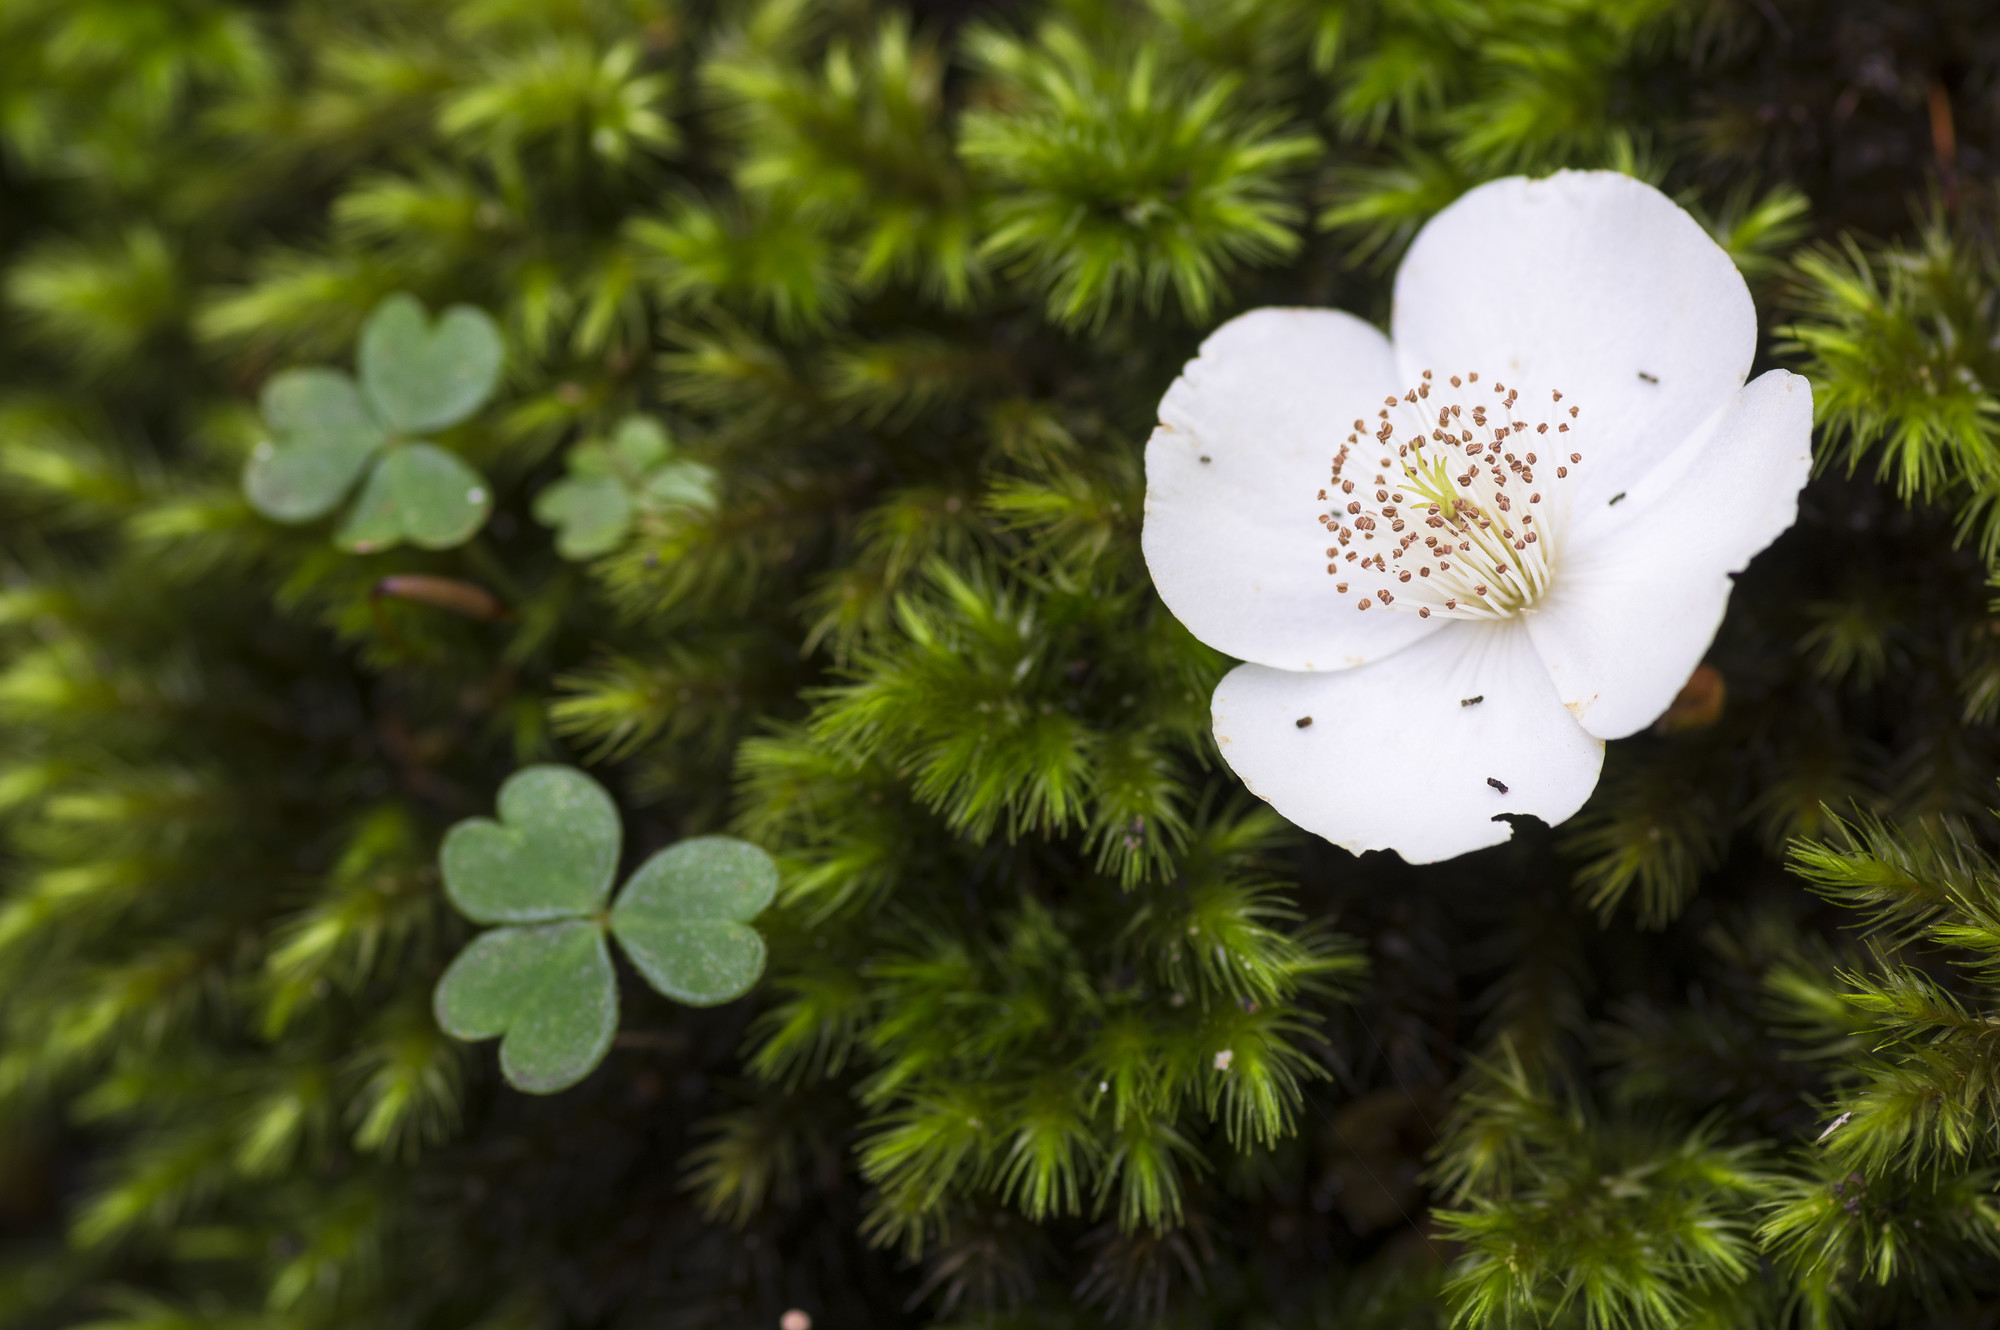 Fallen leatherwood flower (Eucryphia lucida) on moss, Lake St Clair